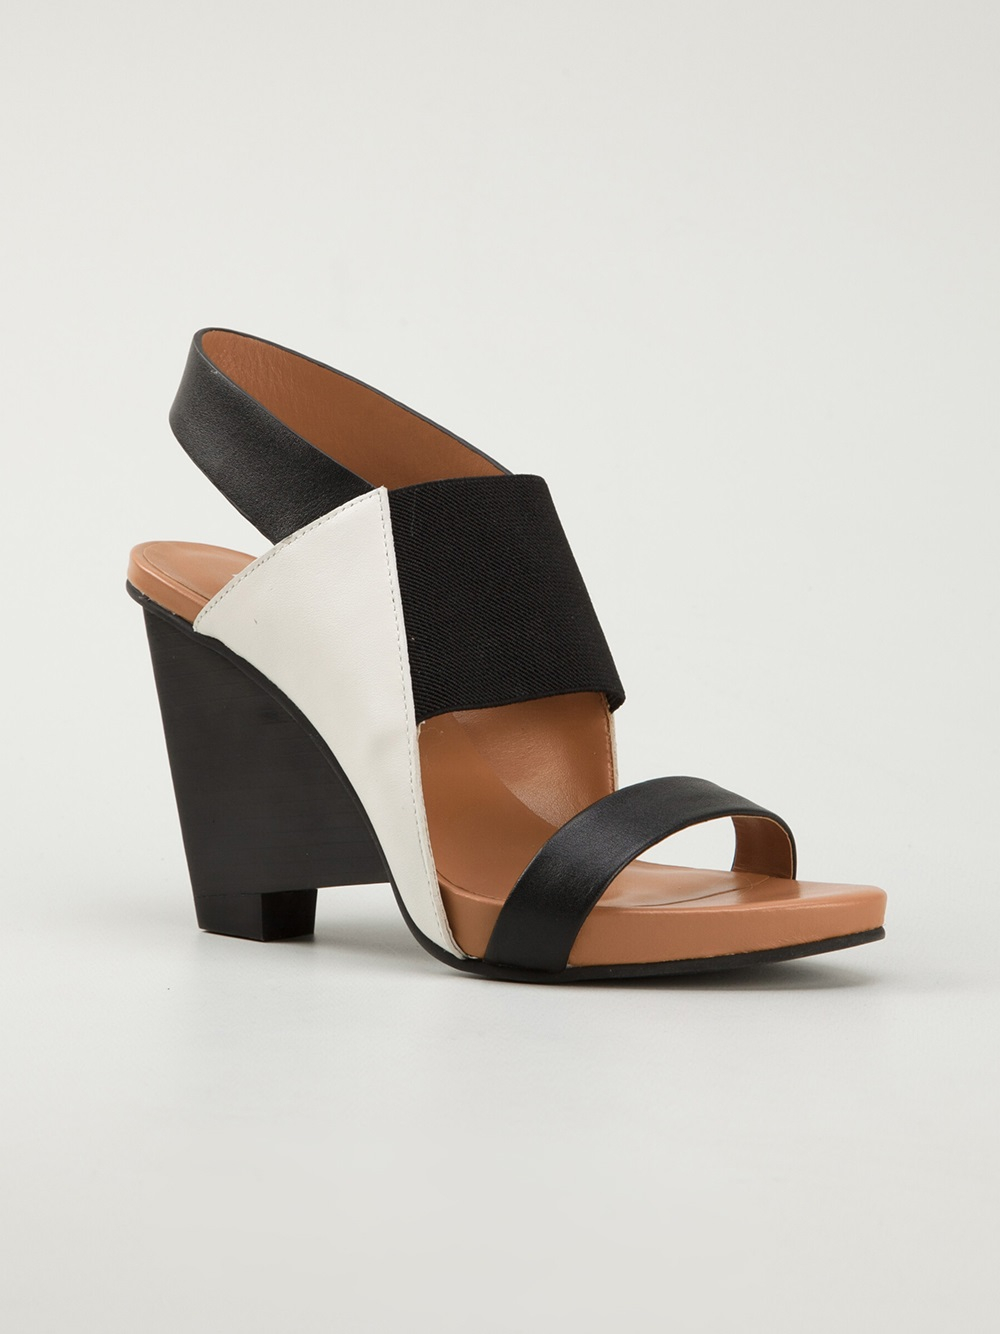 United Nude Sandals in Gray - Lyst